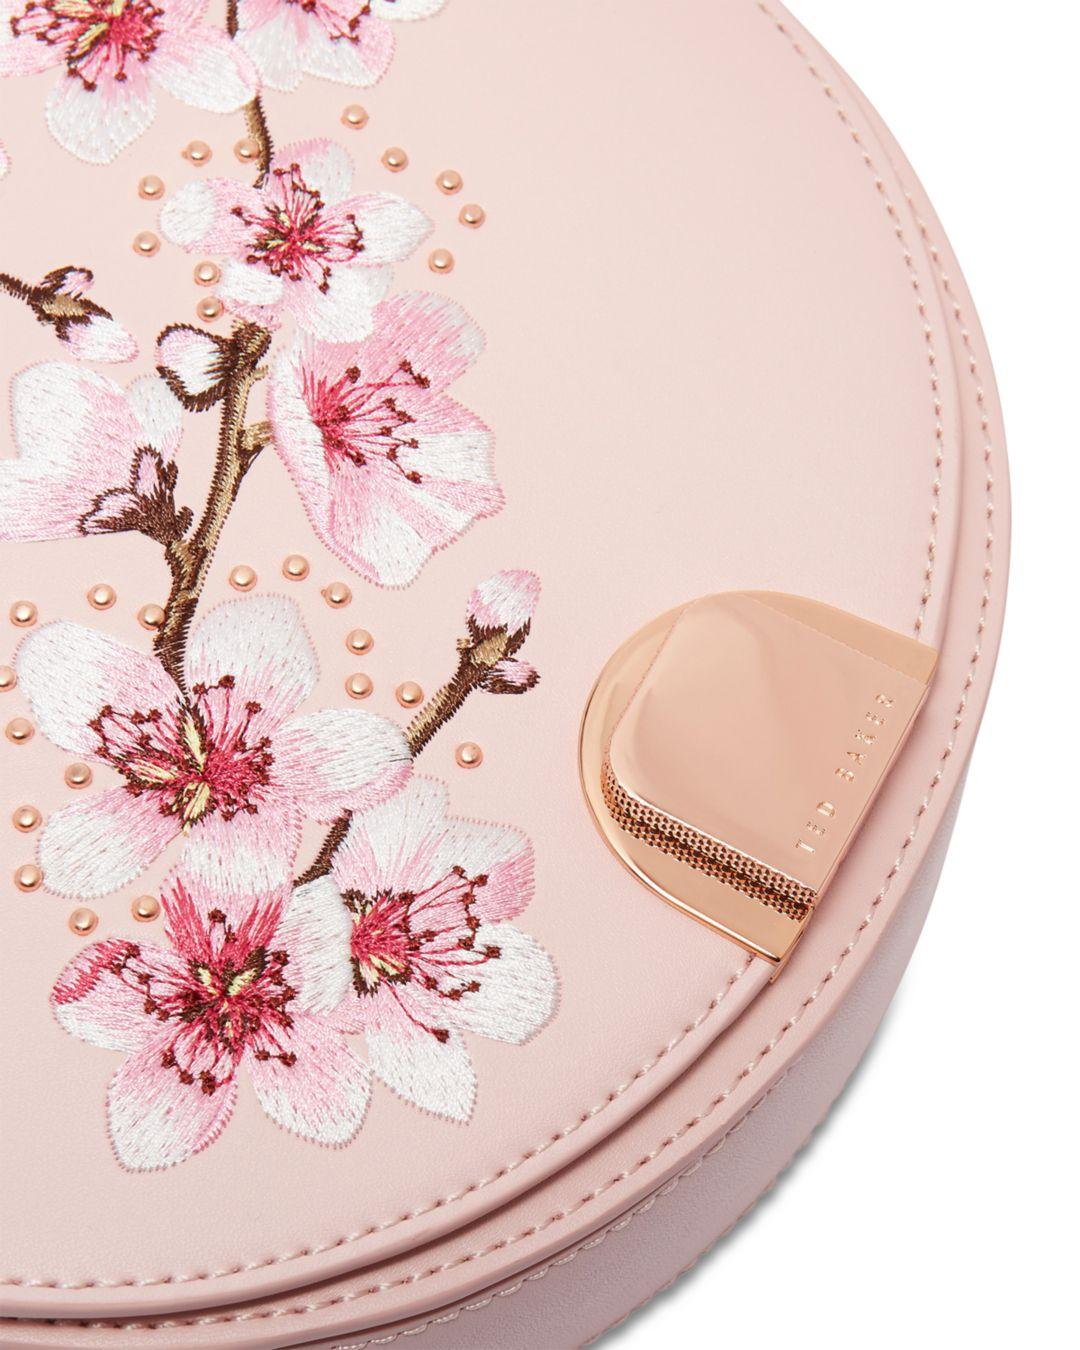 04253a3380 Ted Baker Susy Soft Blossom Leather Moon Bag in Pink - Lyst